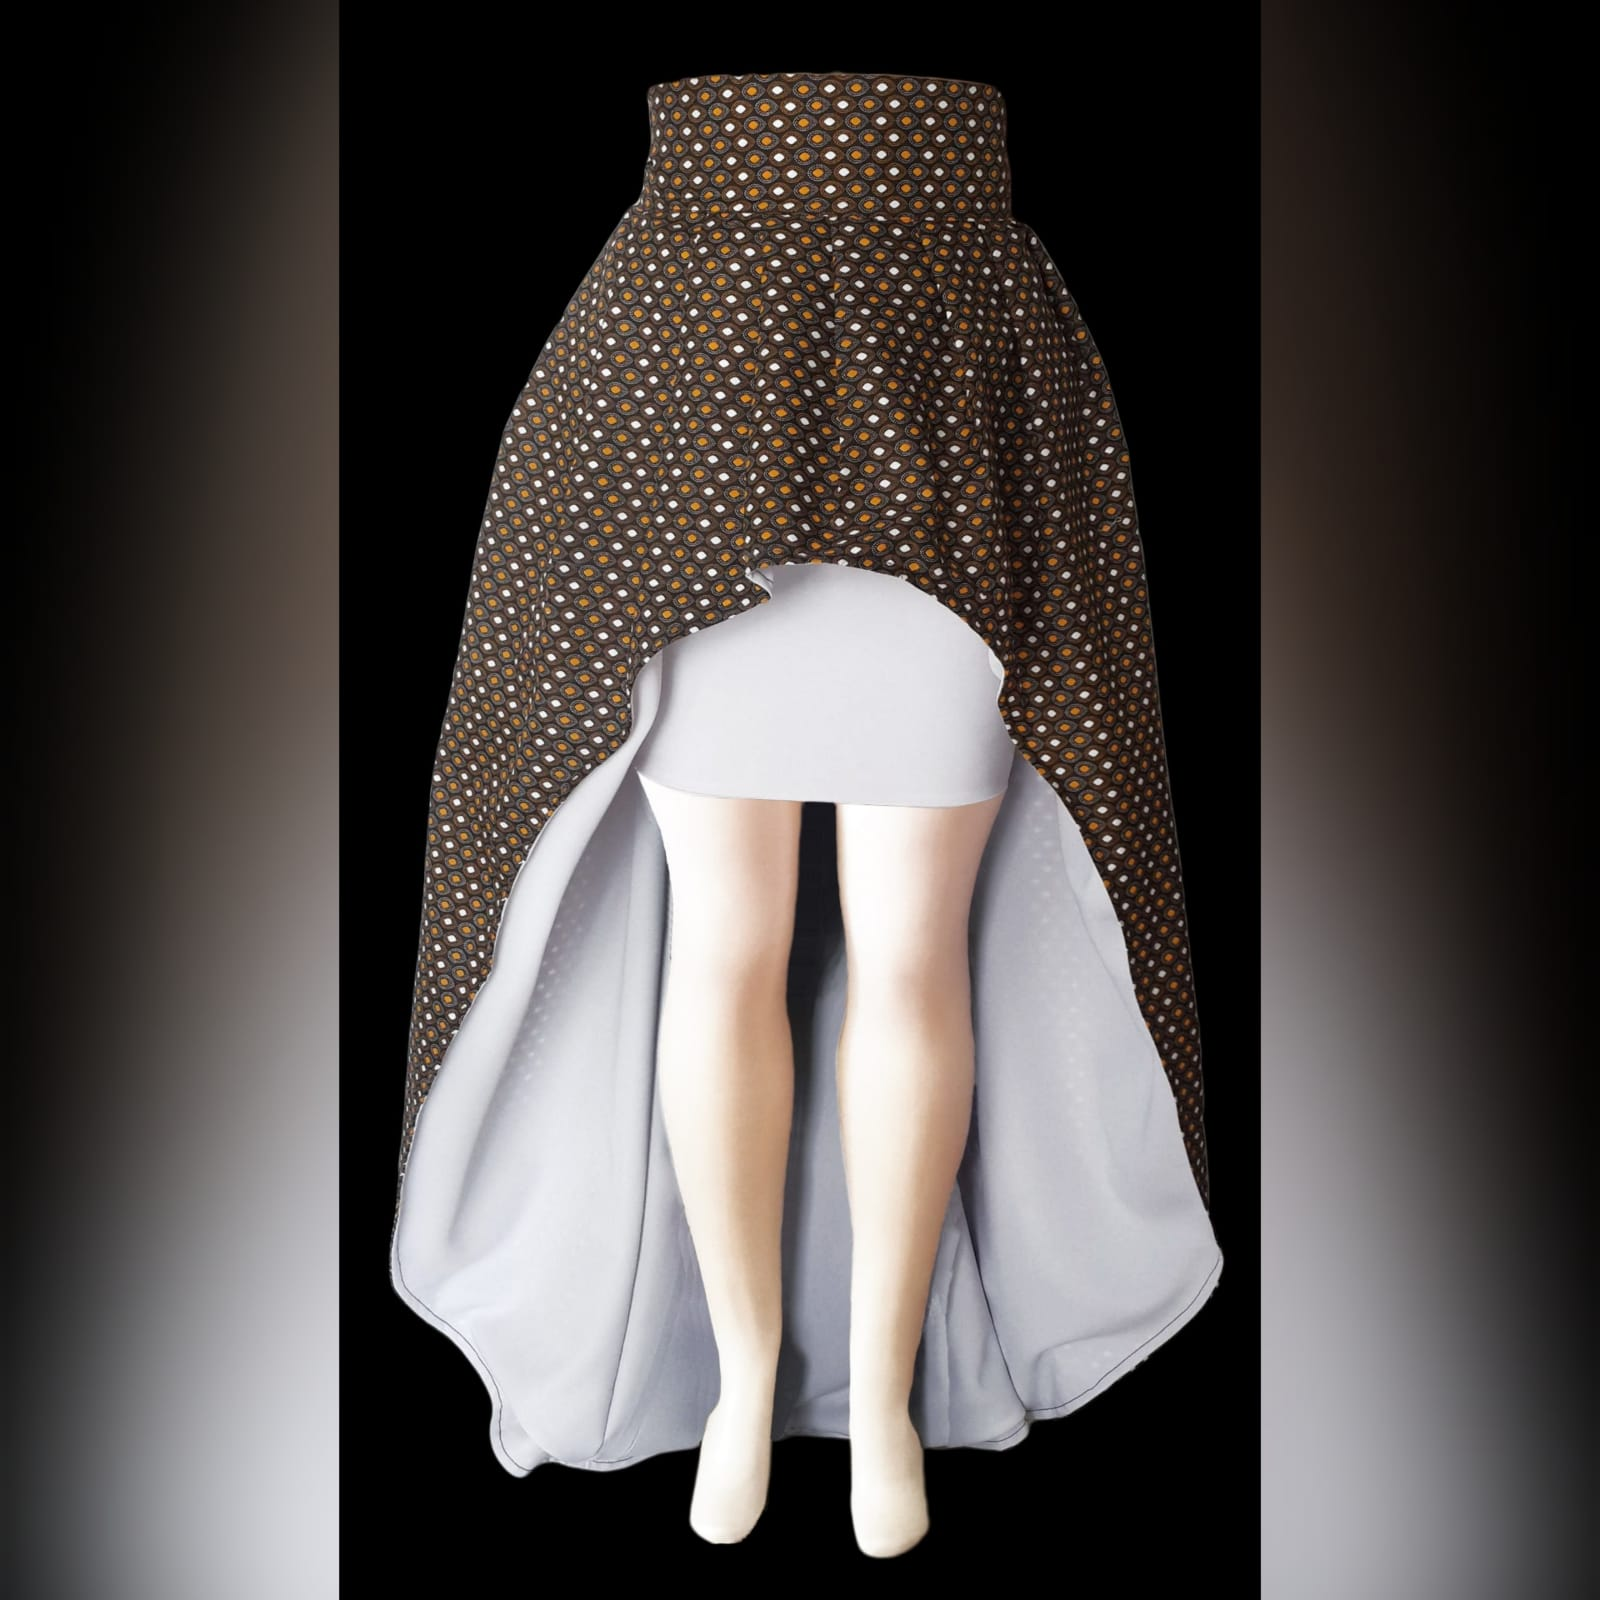 High waisted hi-low traditional skirt with xhosa print 3 high waisted 2 in 1 high low traditional skirt with xhosa print. Inside of the high low lined with white. With an attached mini white skirt. Matching doek.